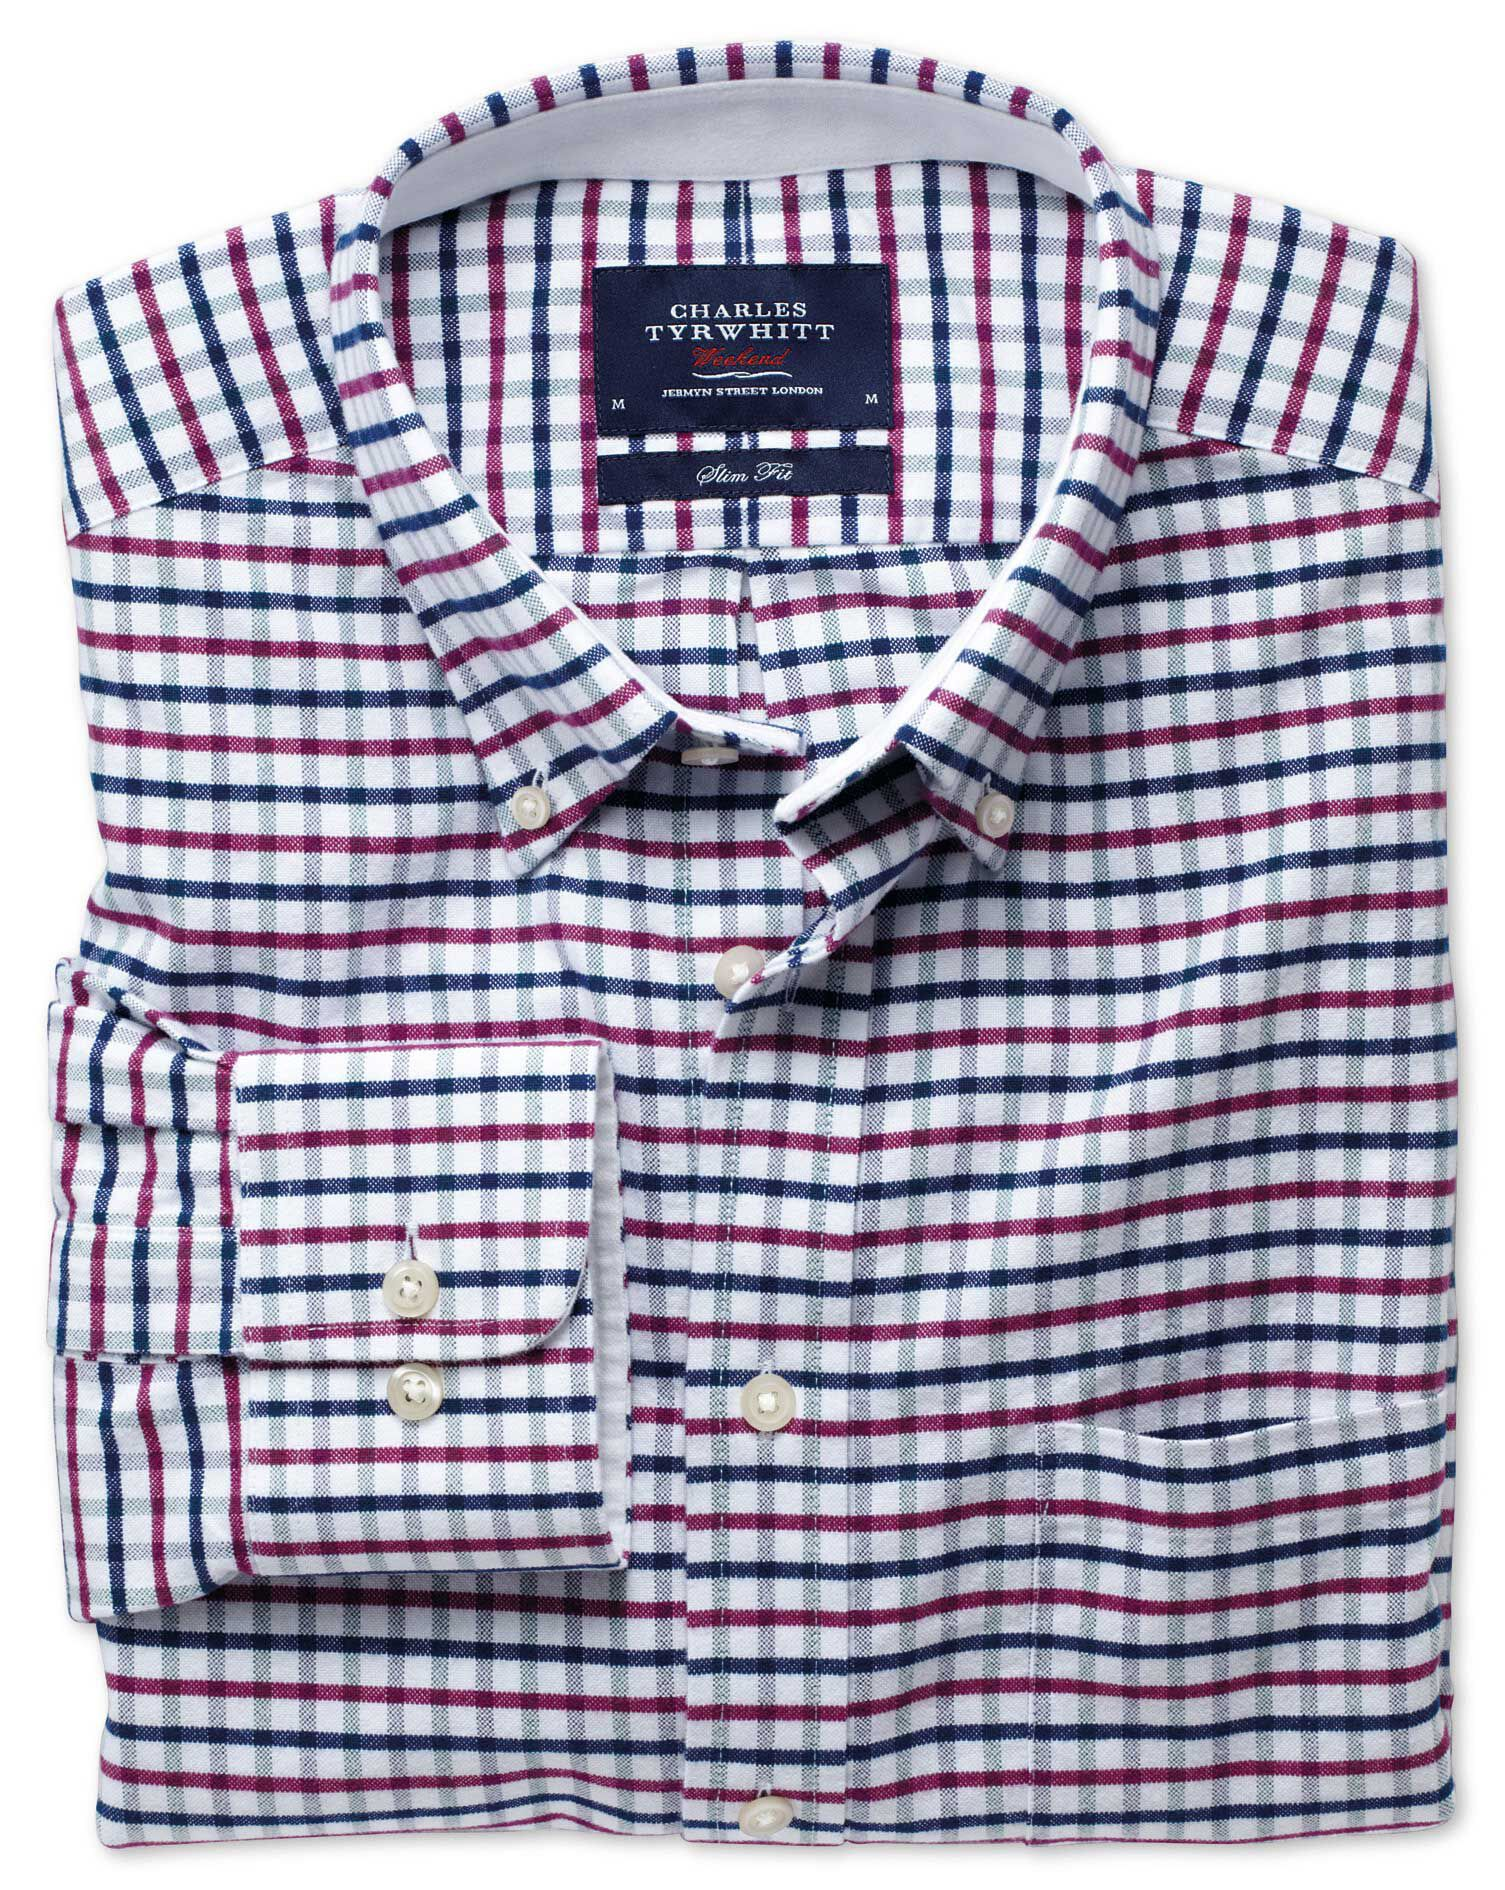 Slim Fit Navy and Berry Tattersall Washed Oxford Cotton Shirt Single Cuff Size Large by Charles Tyrw